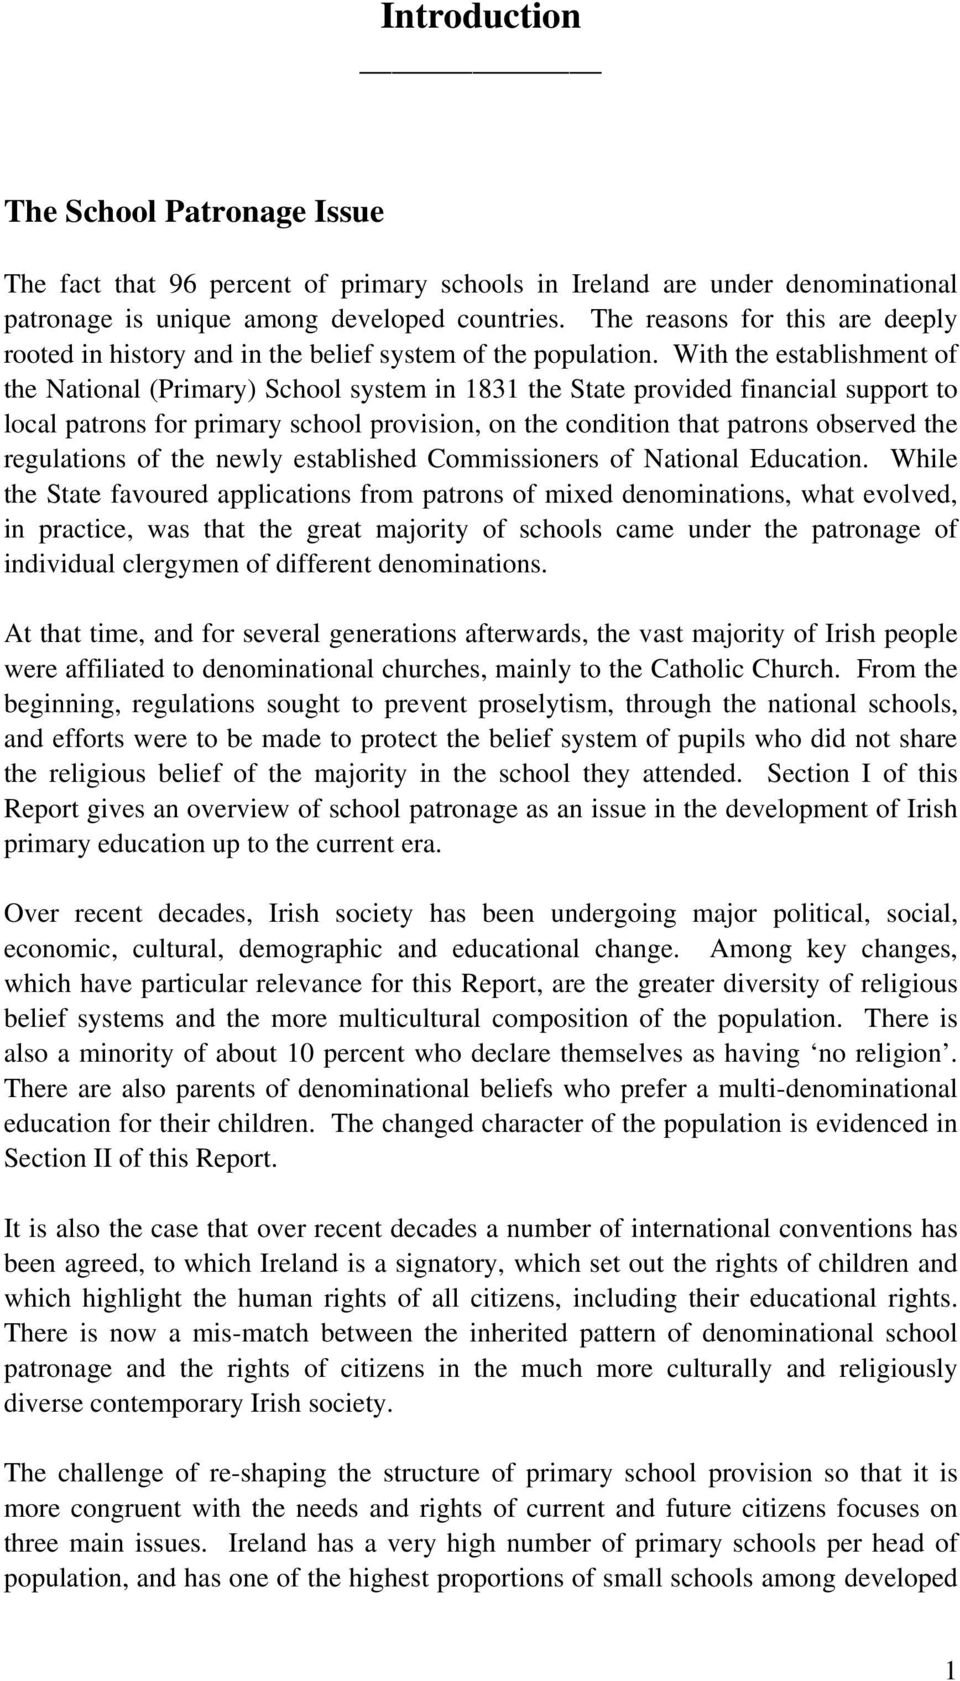 With the establishment of the National (Primary) School system in 1831 the State provided financial support to local patrons for primary school provision, on the condition that patrons observed the